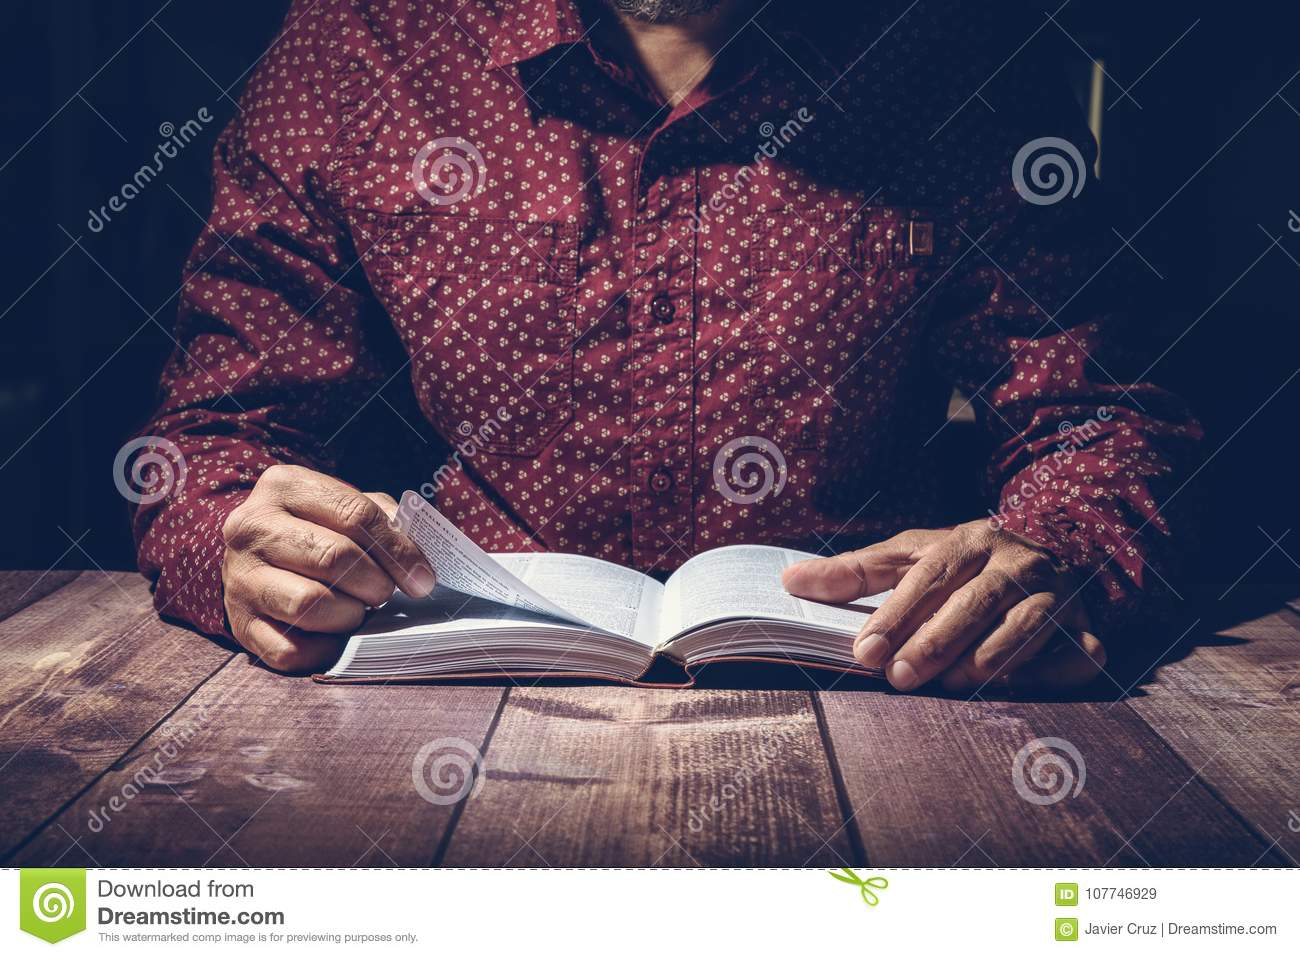 Pastor studying the Bible on a wooden desk